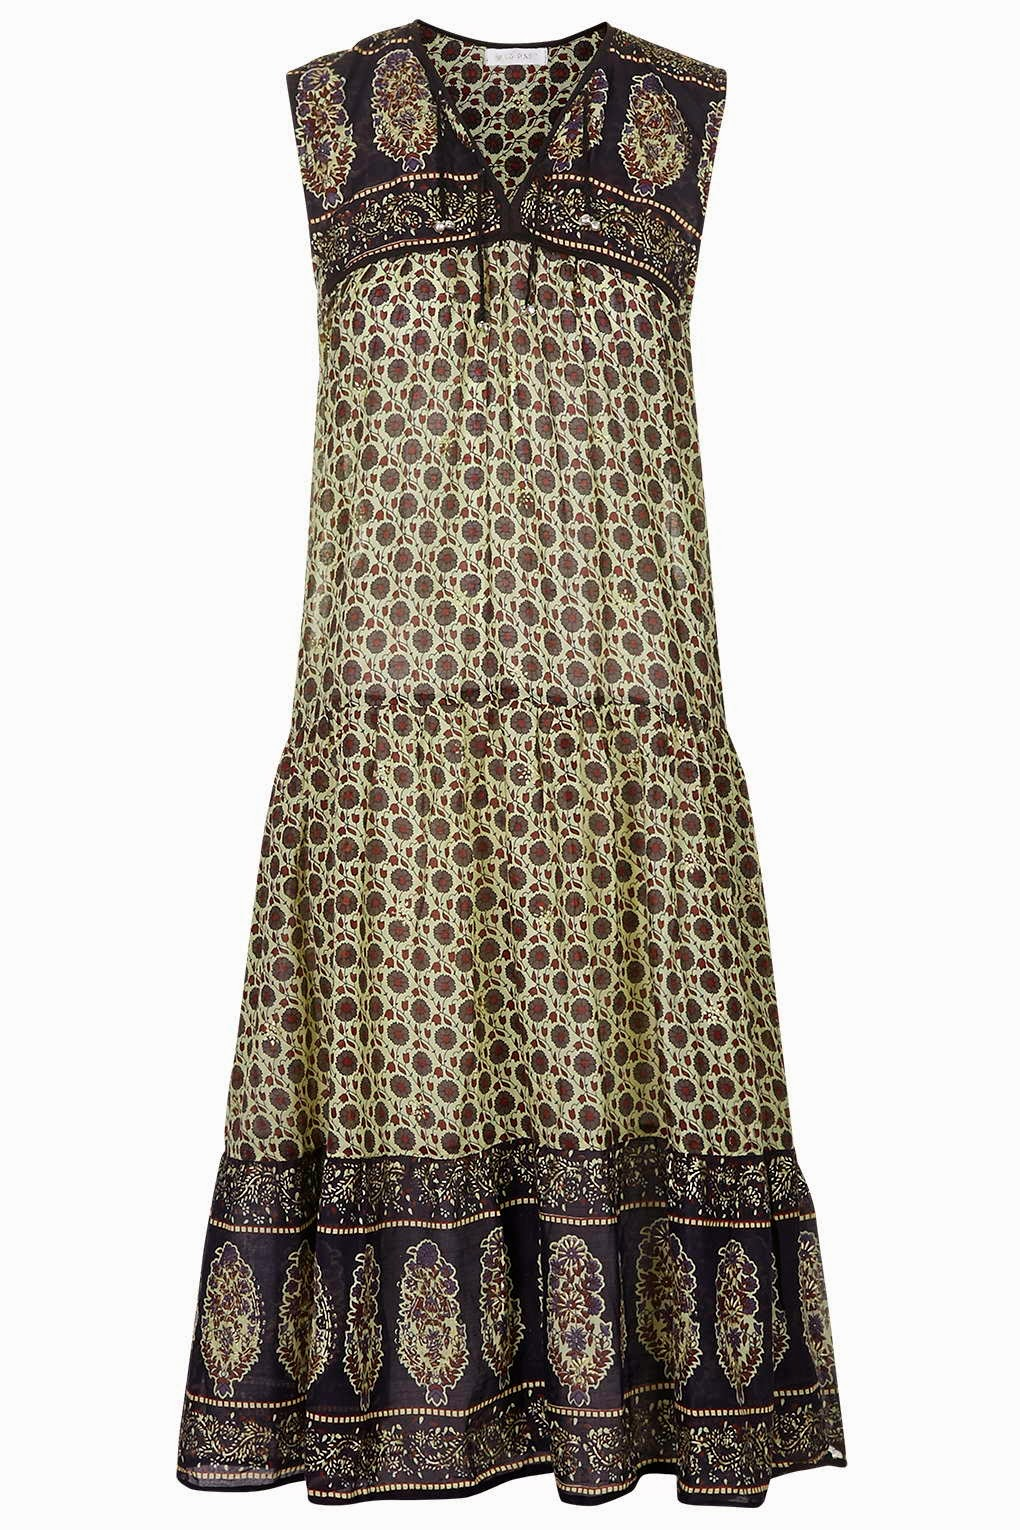 wild past dress, festival style dress 2015, paisley festival dress,